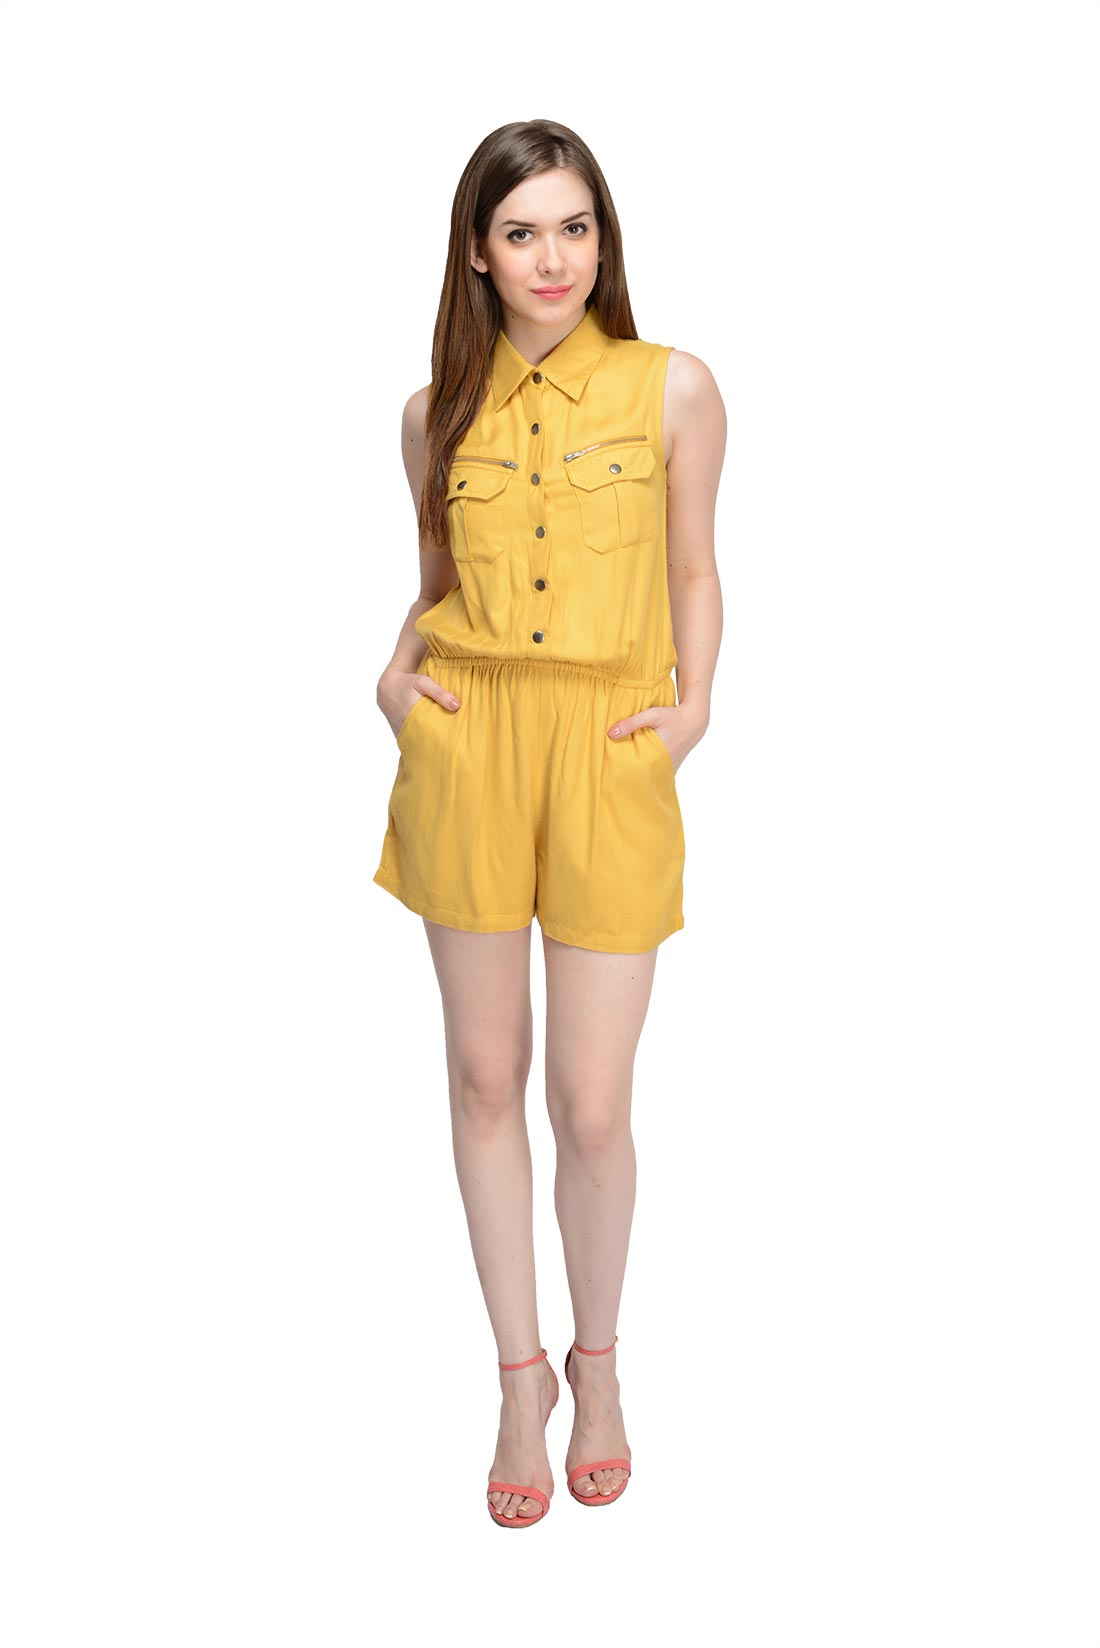 Designer Yellow Short Jumpsuit For Women By Shipgig